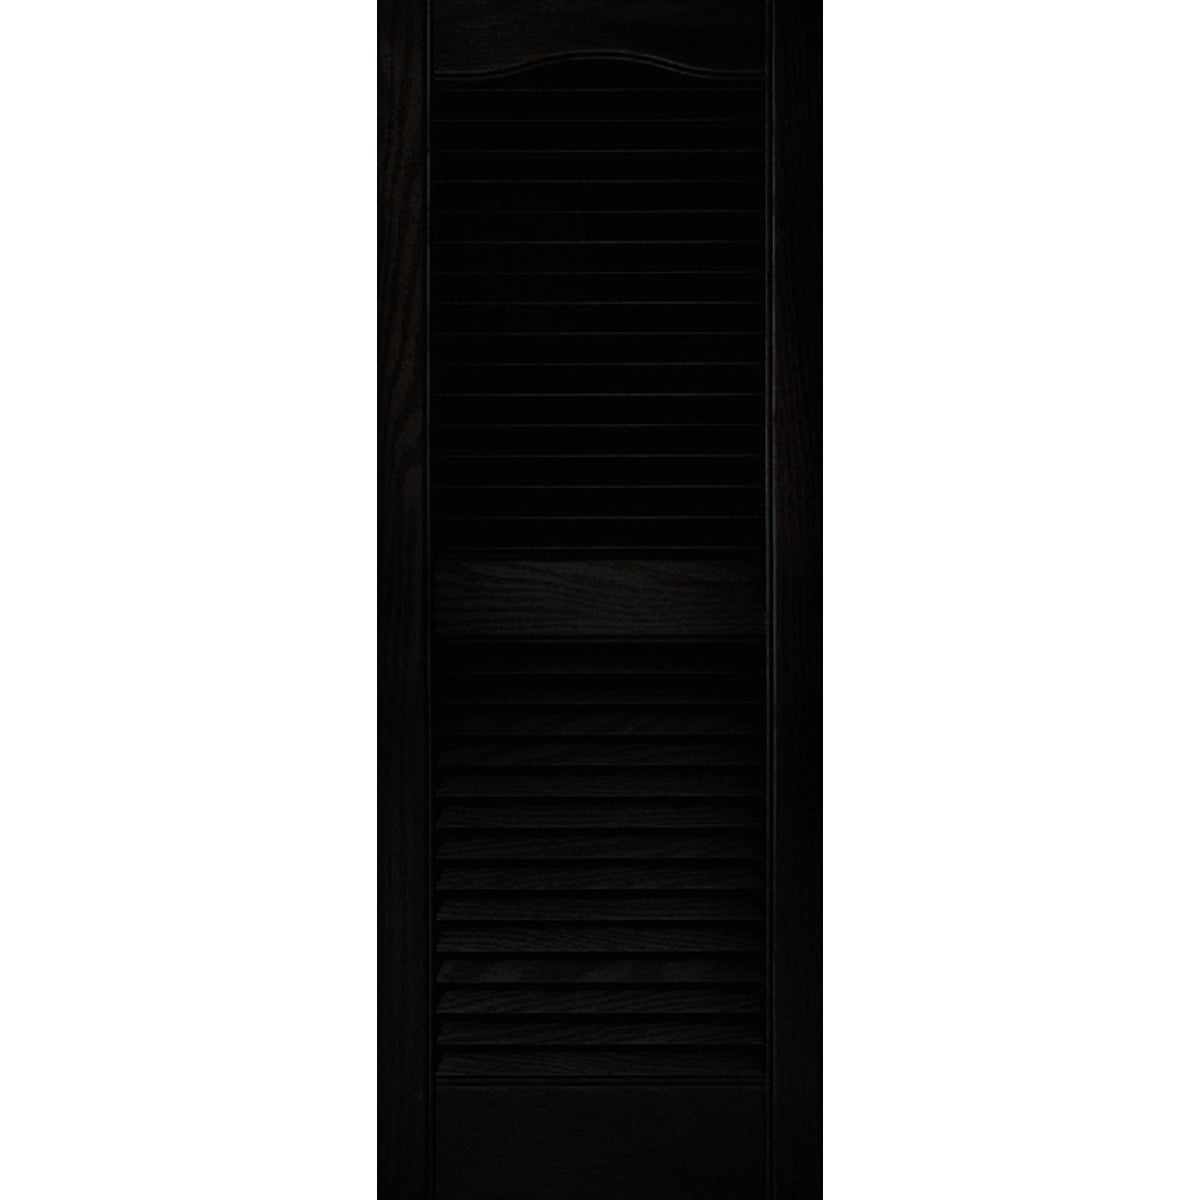 15X39 BLK LOUVER SHUTTER - 020140039002 by The Tapco Group